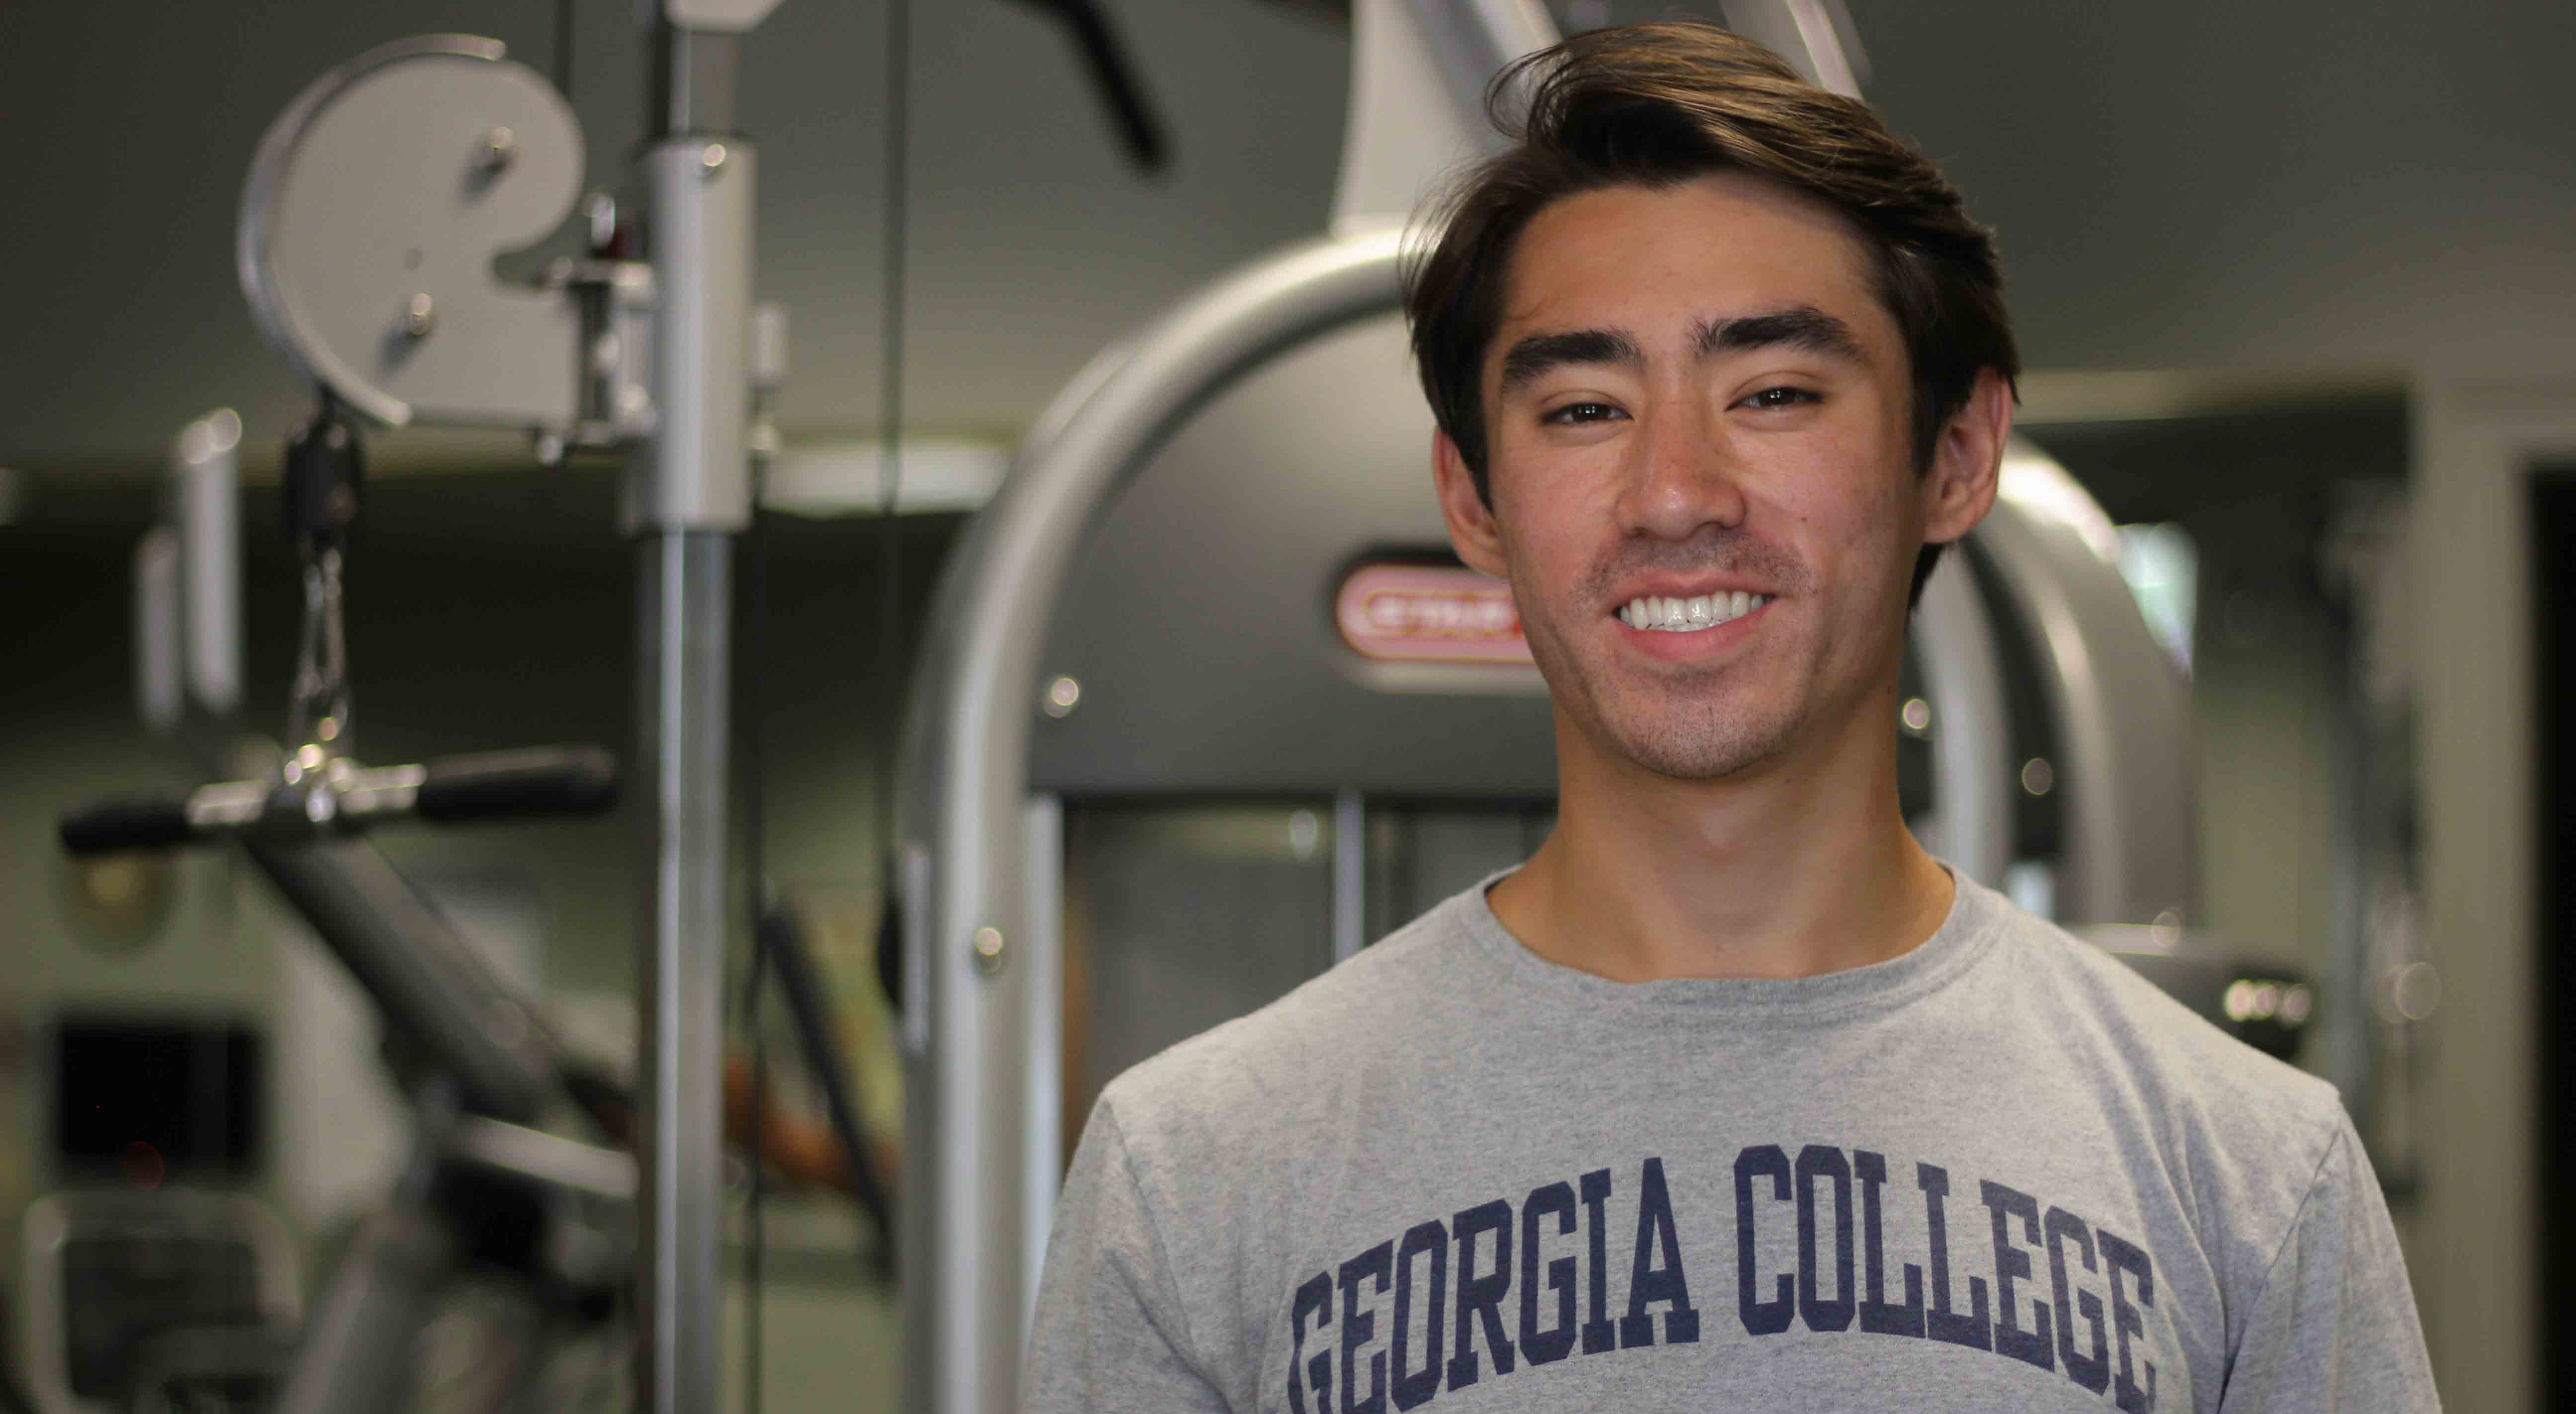 Image for Life-long goal of improving health drives student to pursue physical therapy